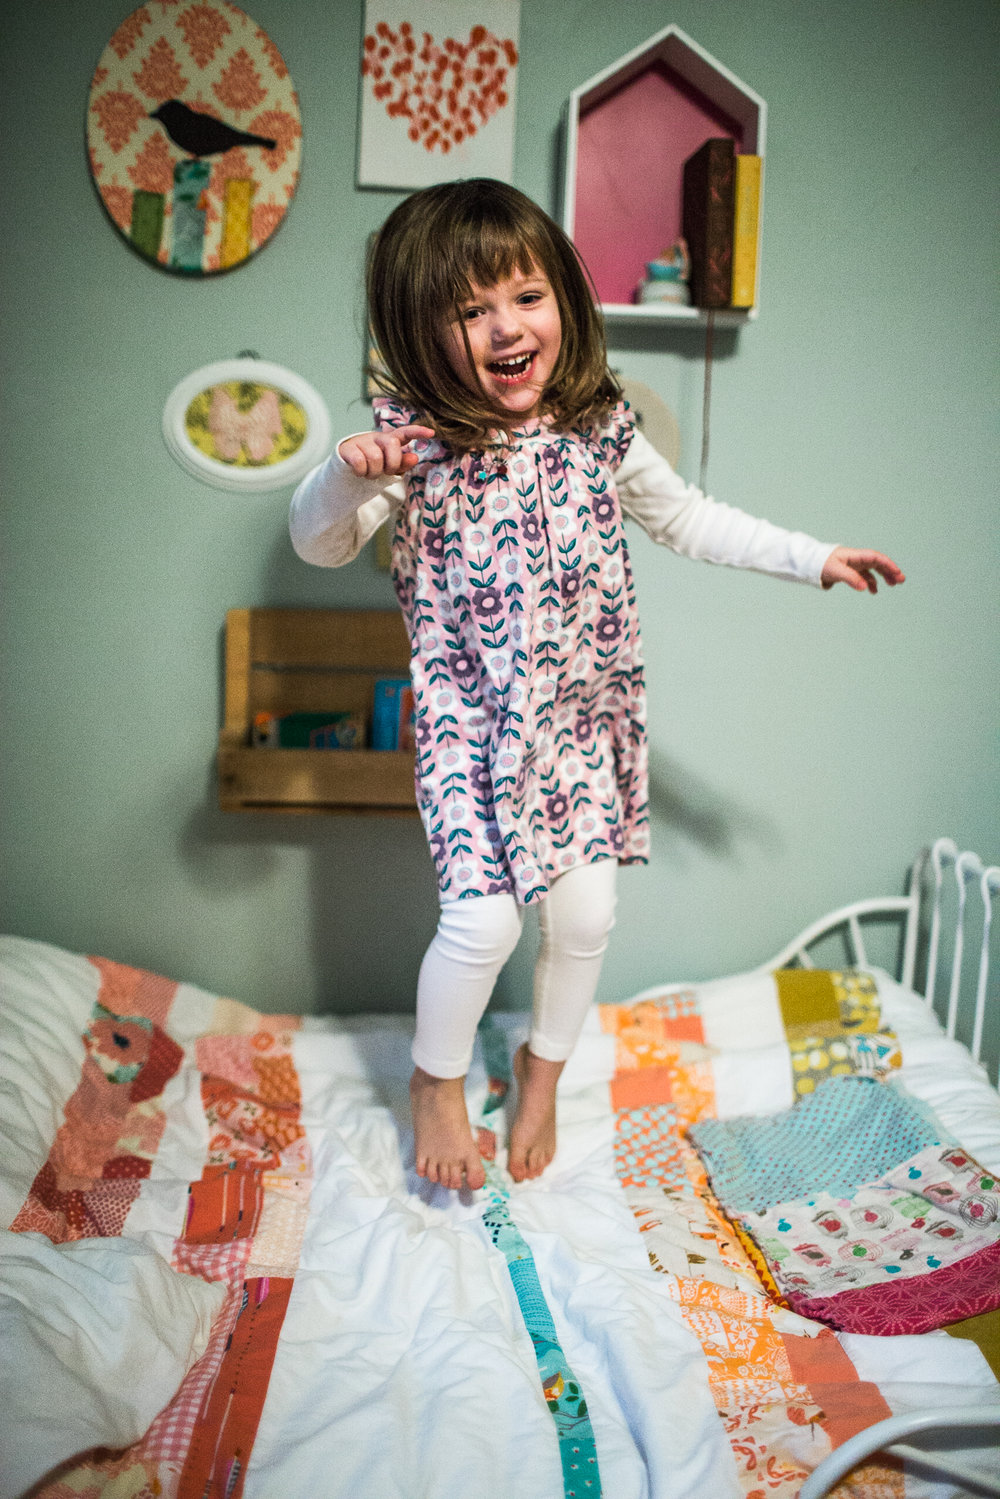 young girl jumping on bed in room